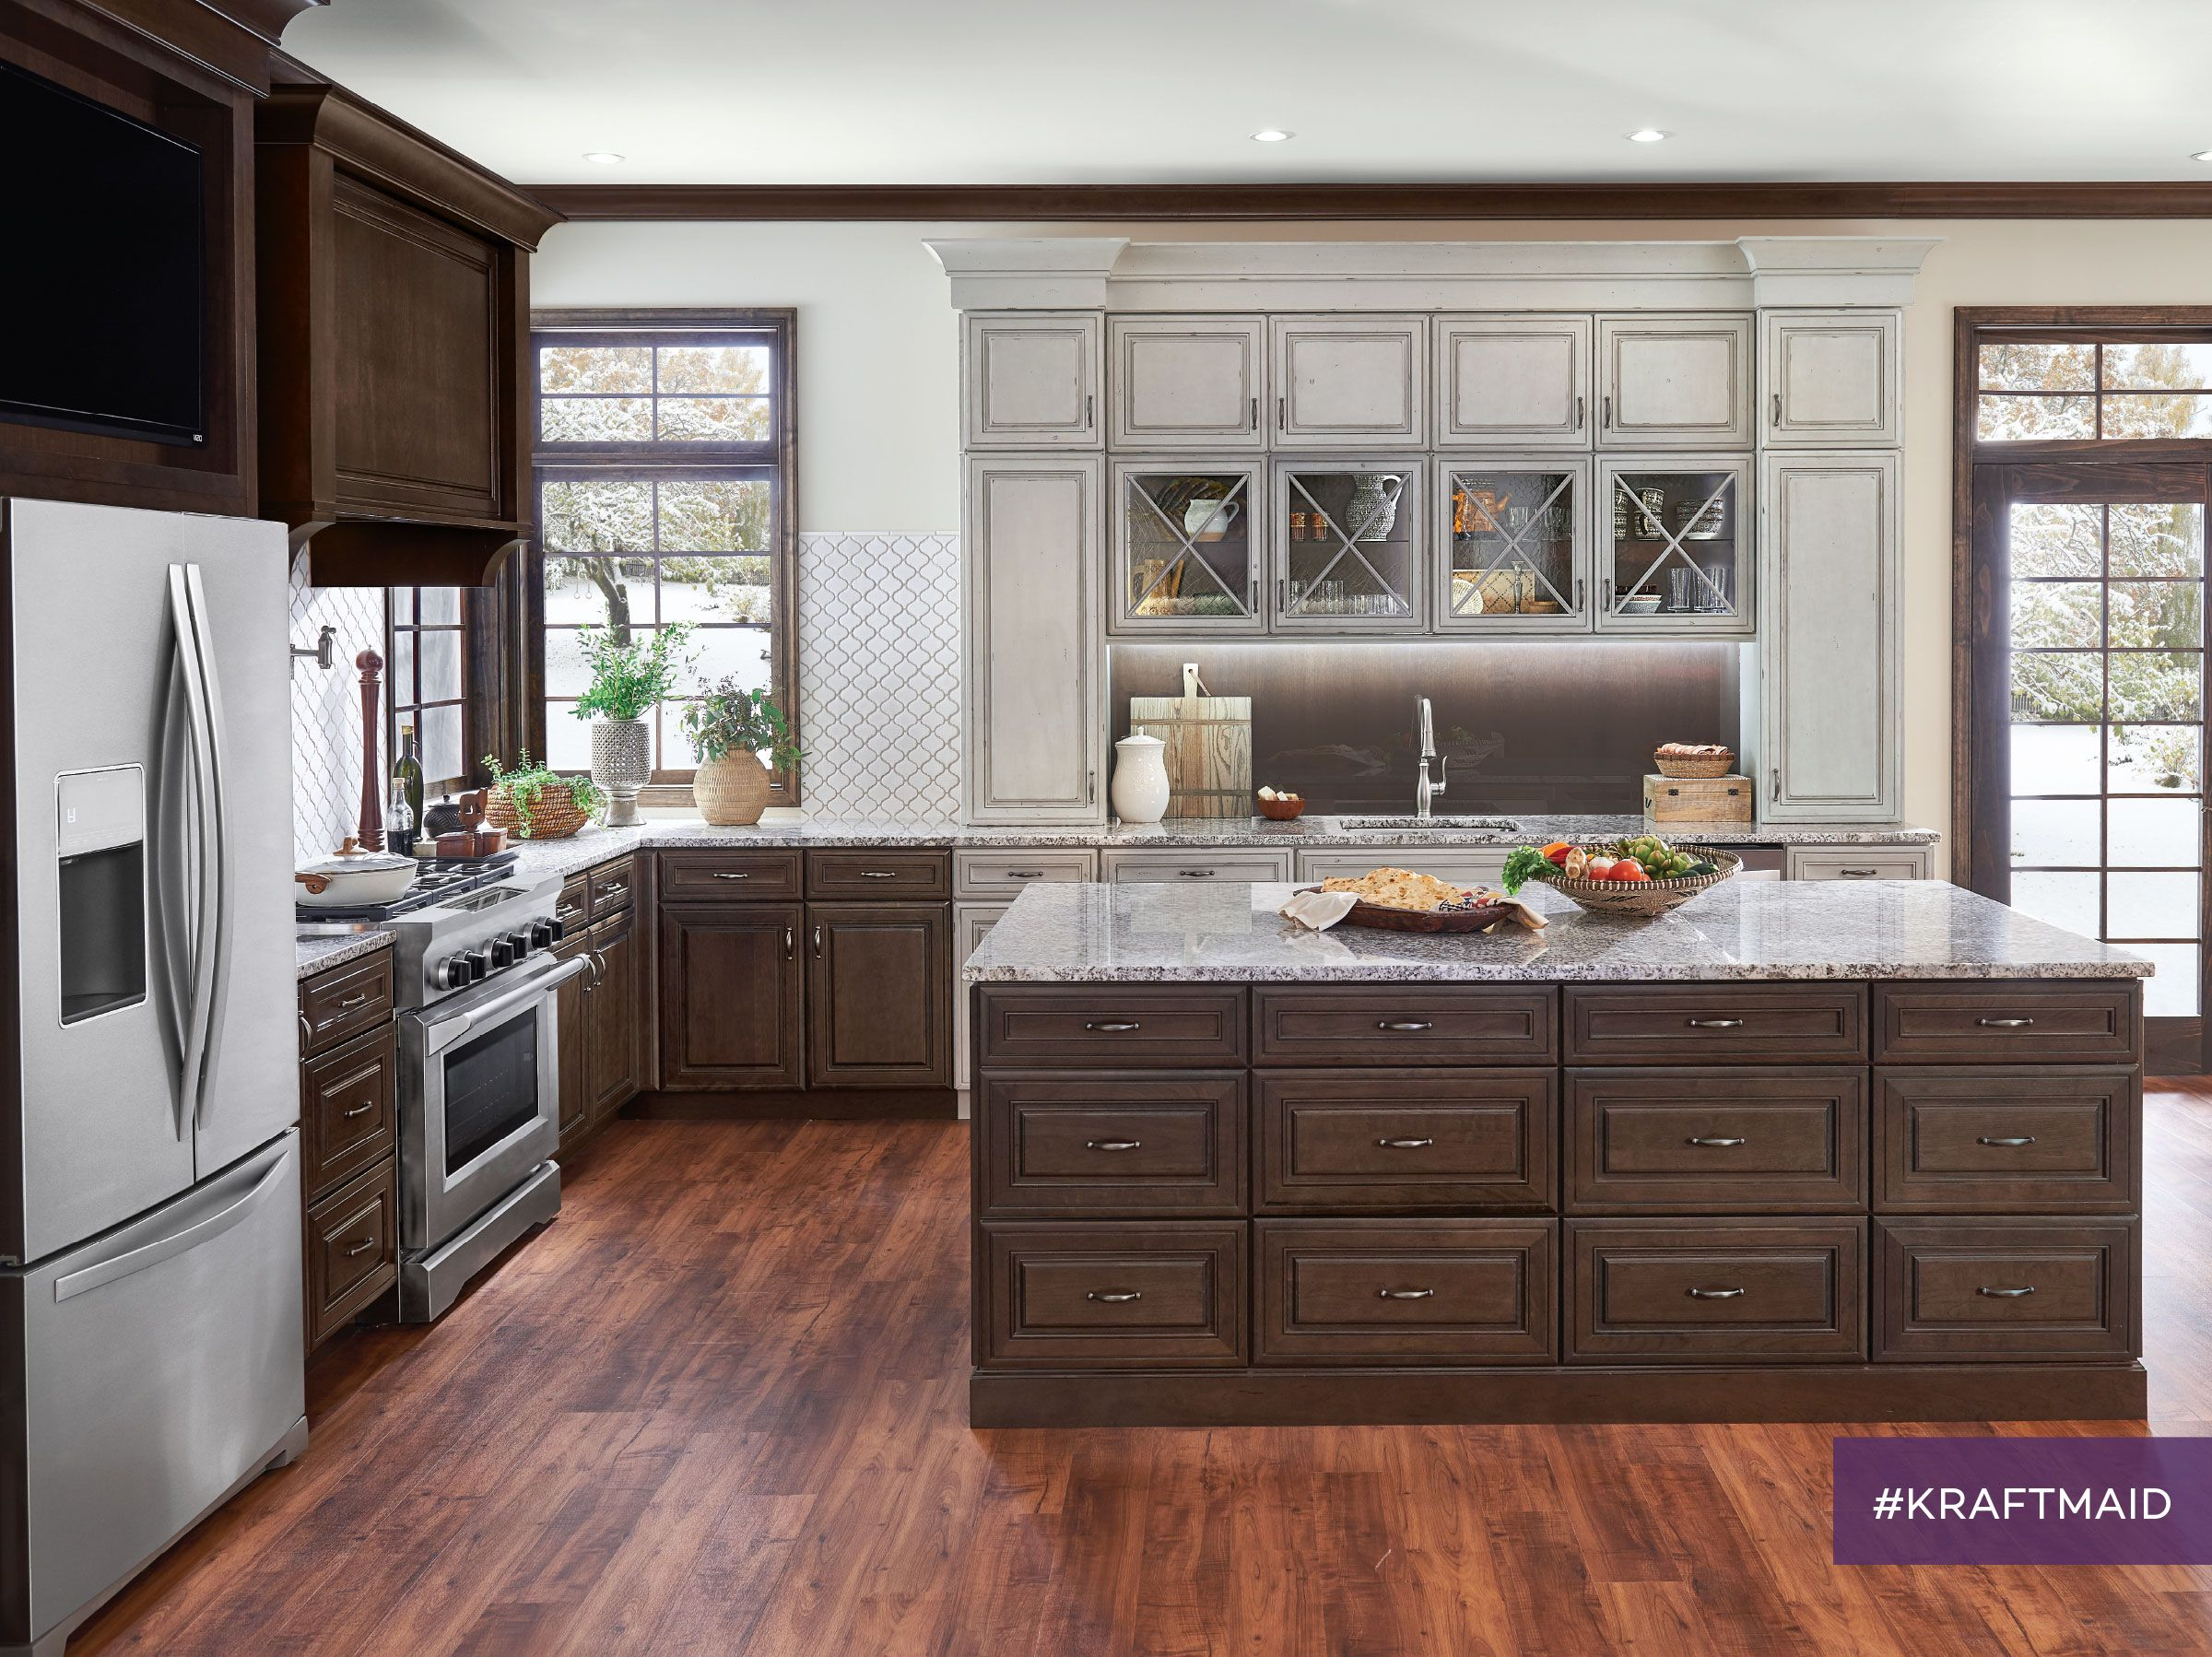 A Bigger Kitchen Island Means More Room For The Whole Family To